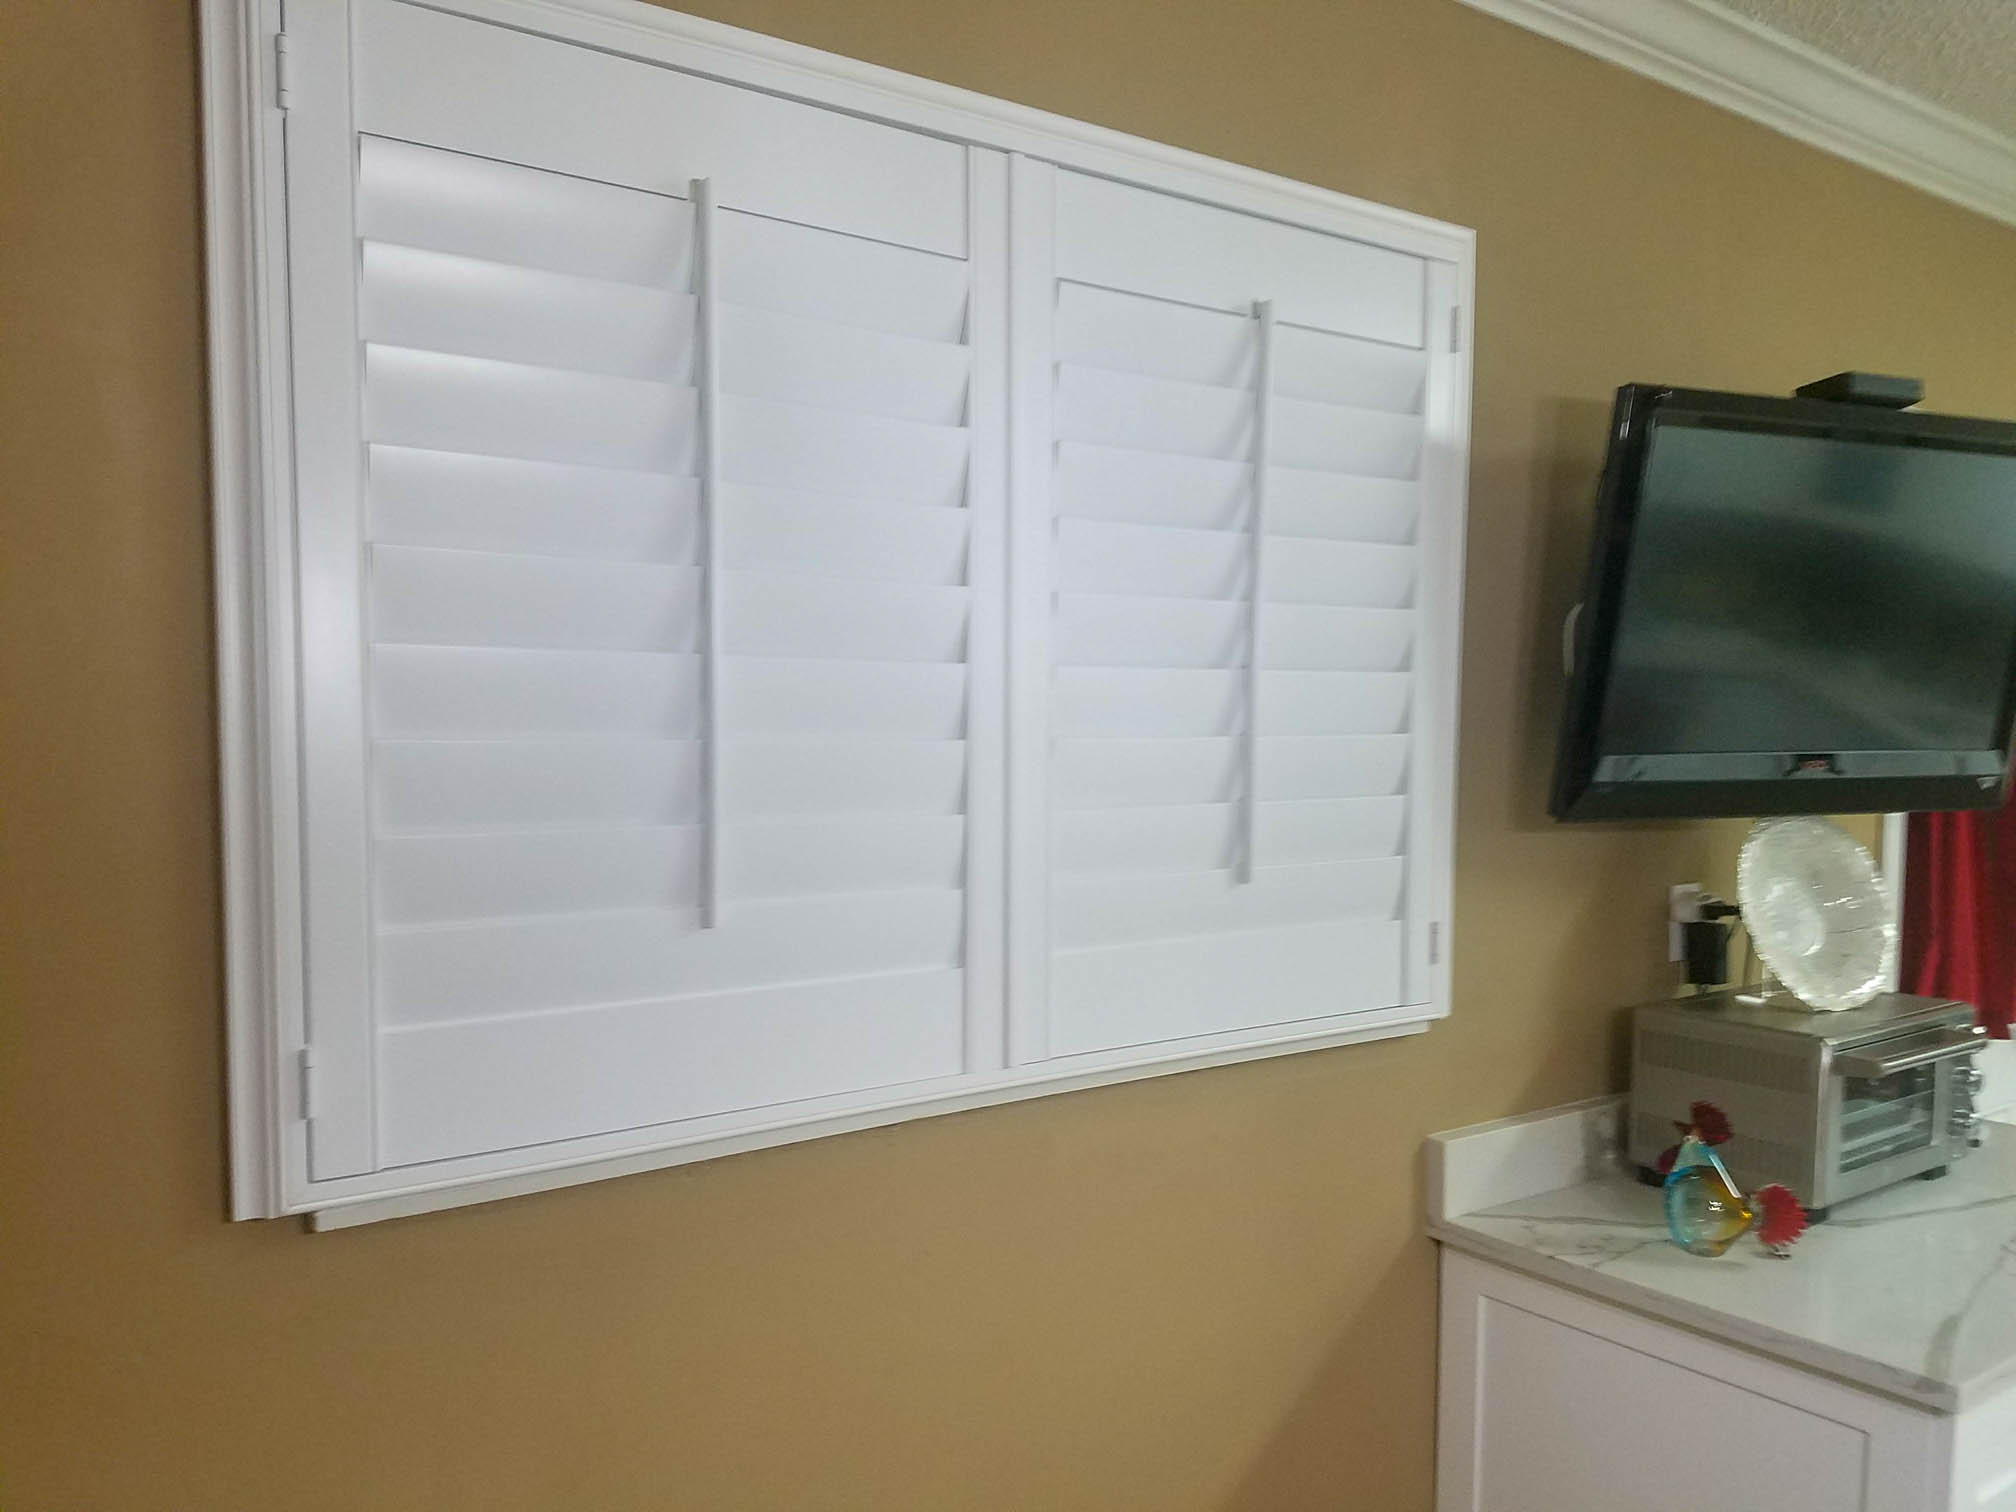 plantation shutters gallery PLANTATION SHUTTERS GALLERY 20171221 175236